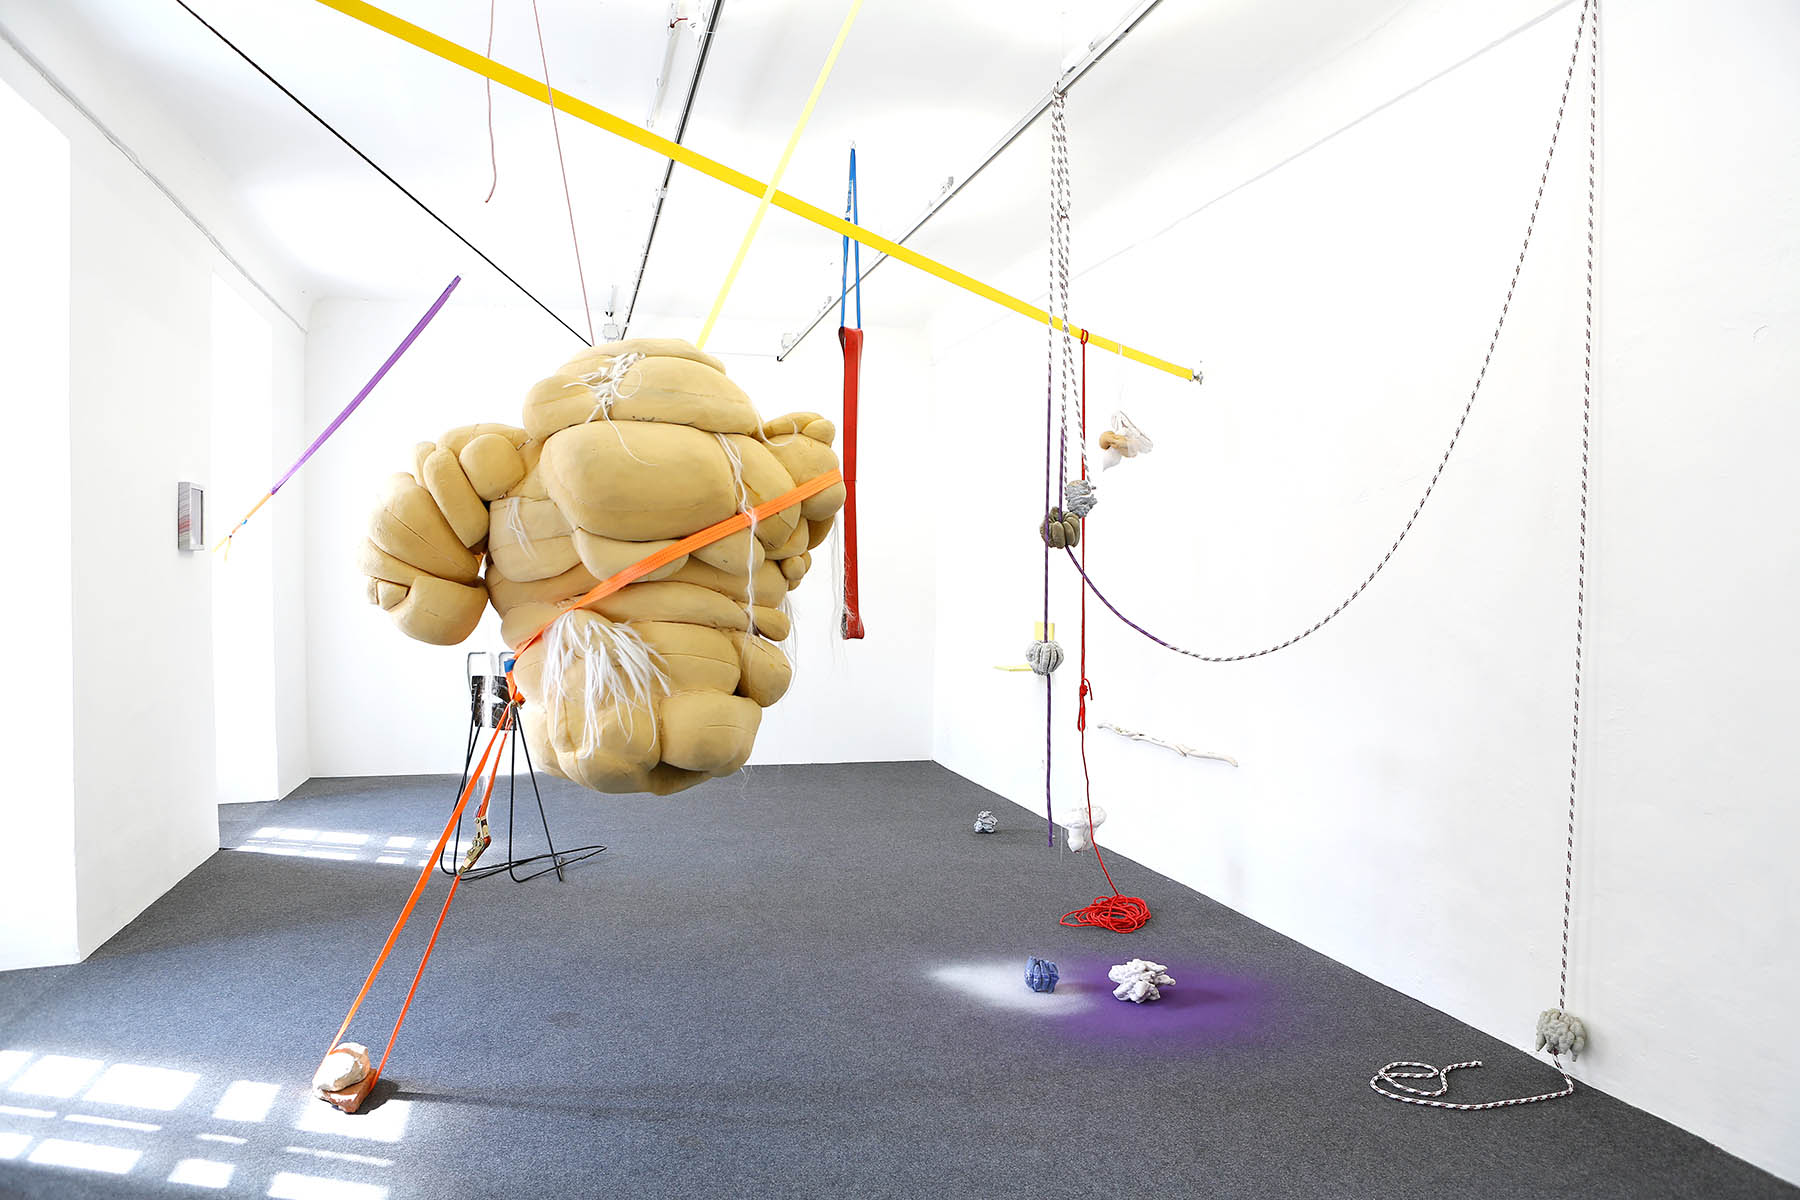 installation, ines doujak, curated by barbara horvath